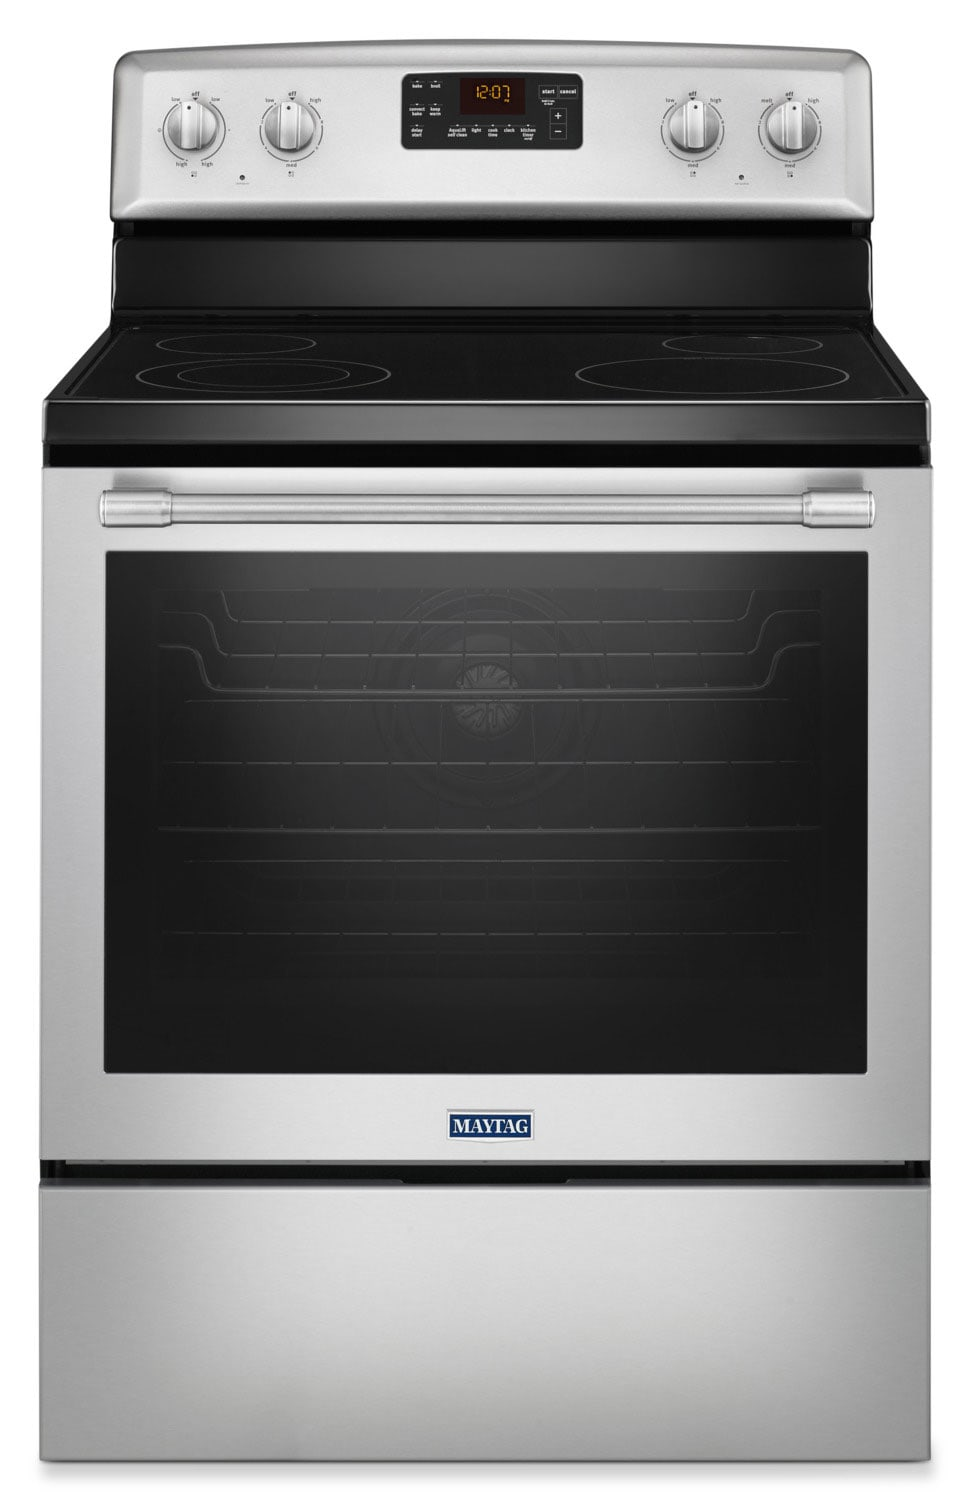 Maytag 6.4 Cu. Ft. Freestanding Electric Convection Range – YMER8650FZ